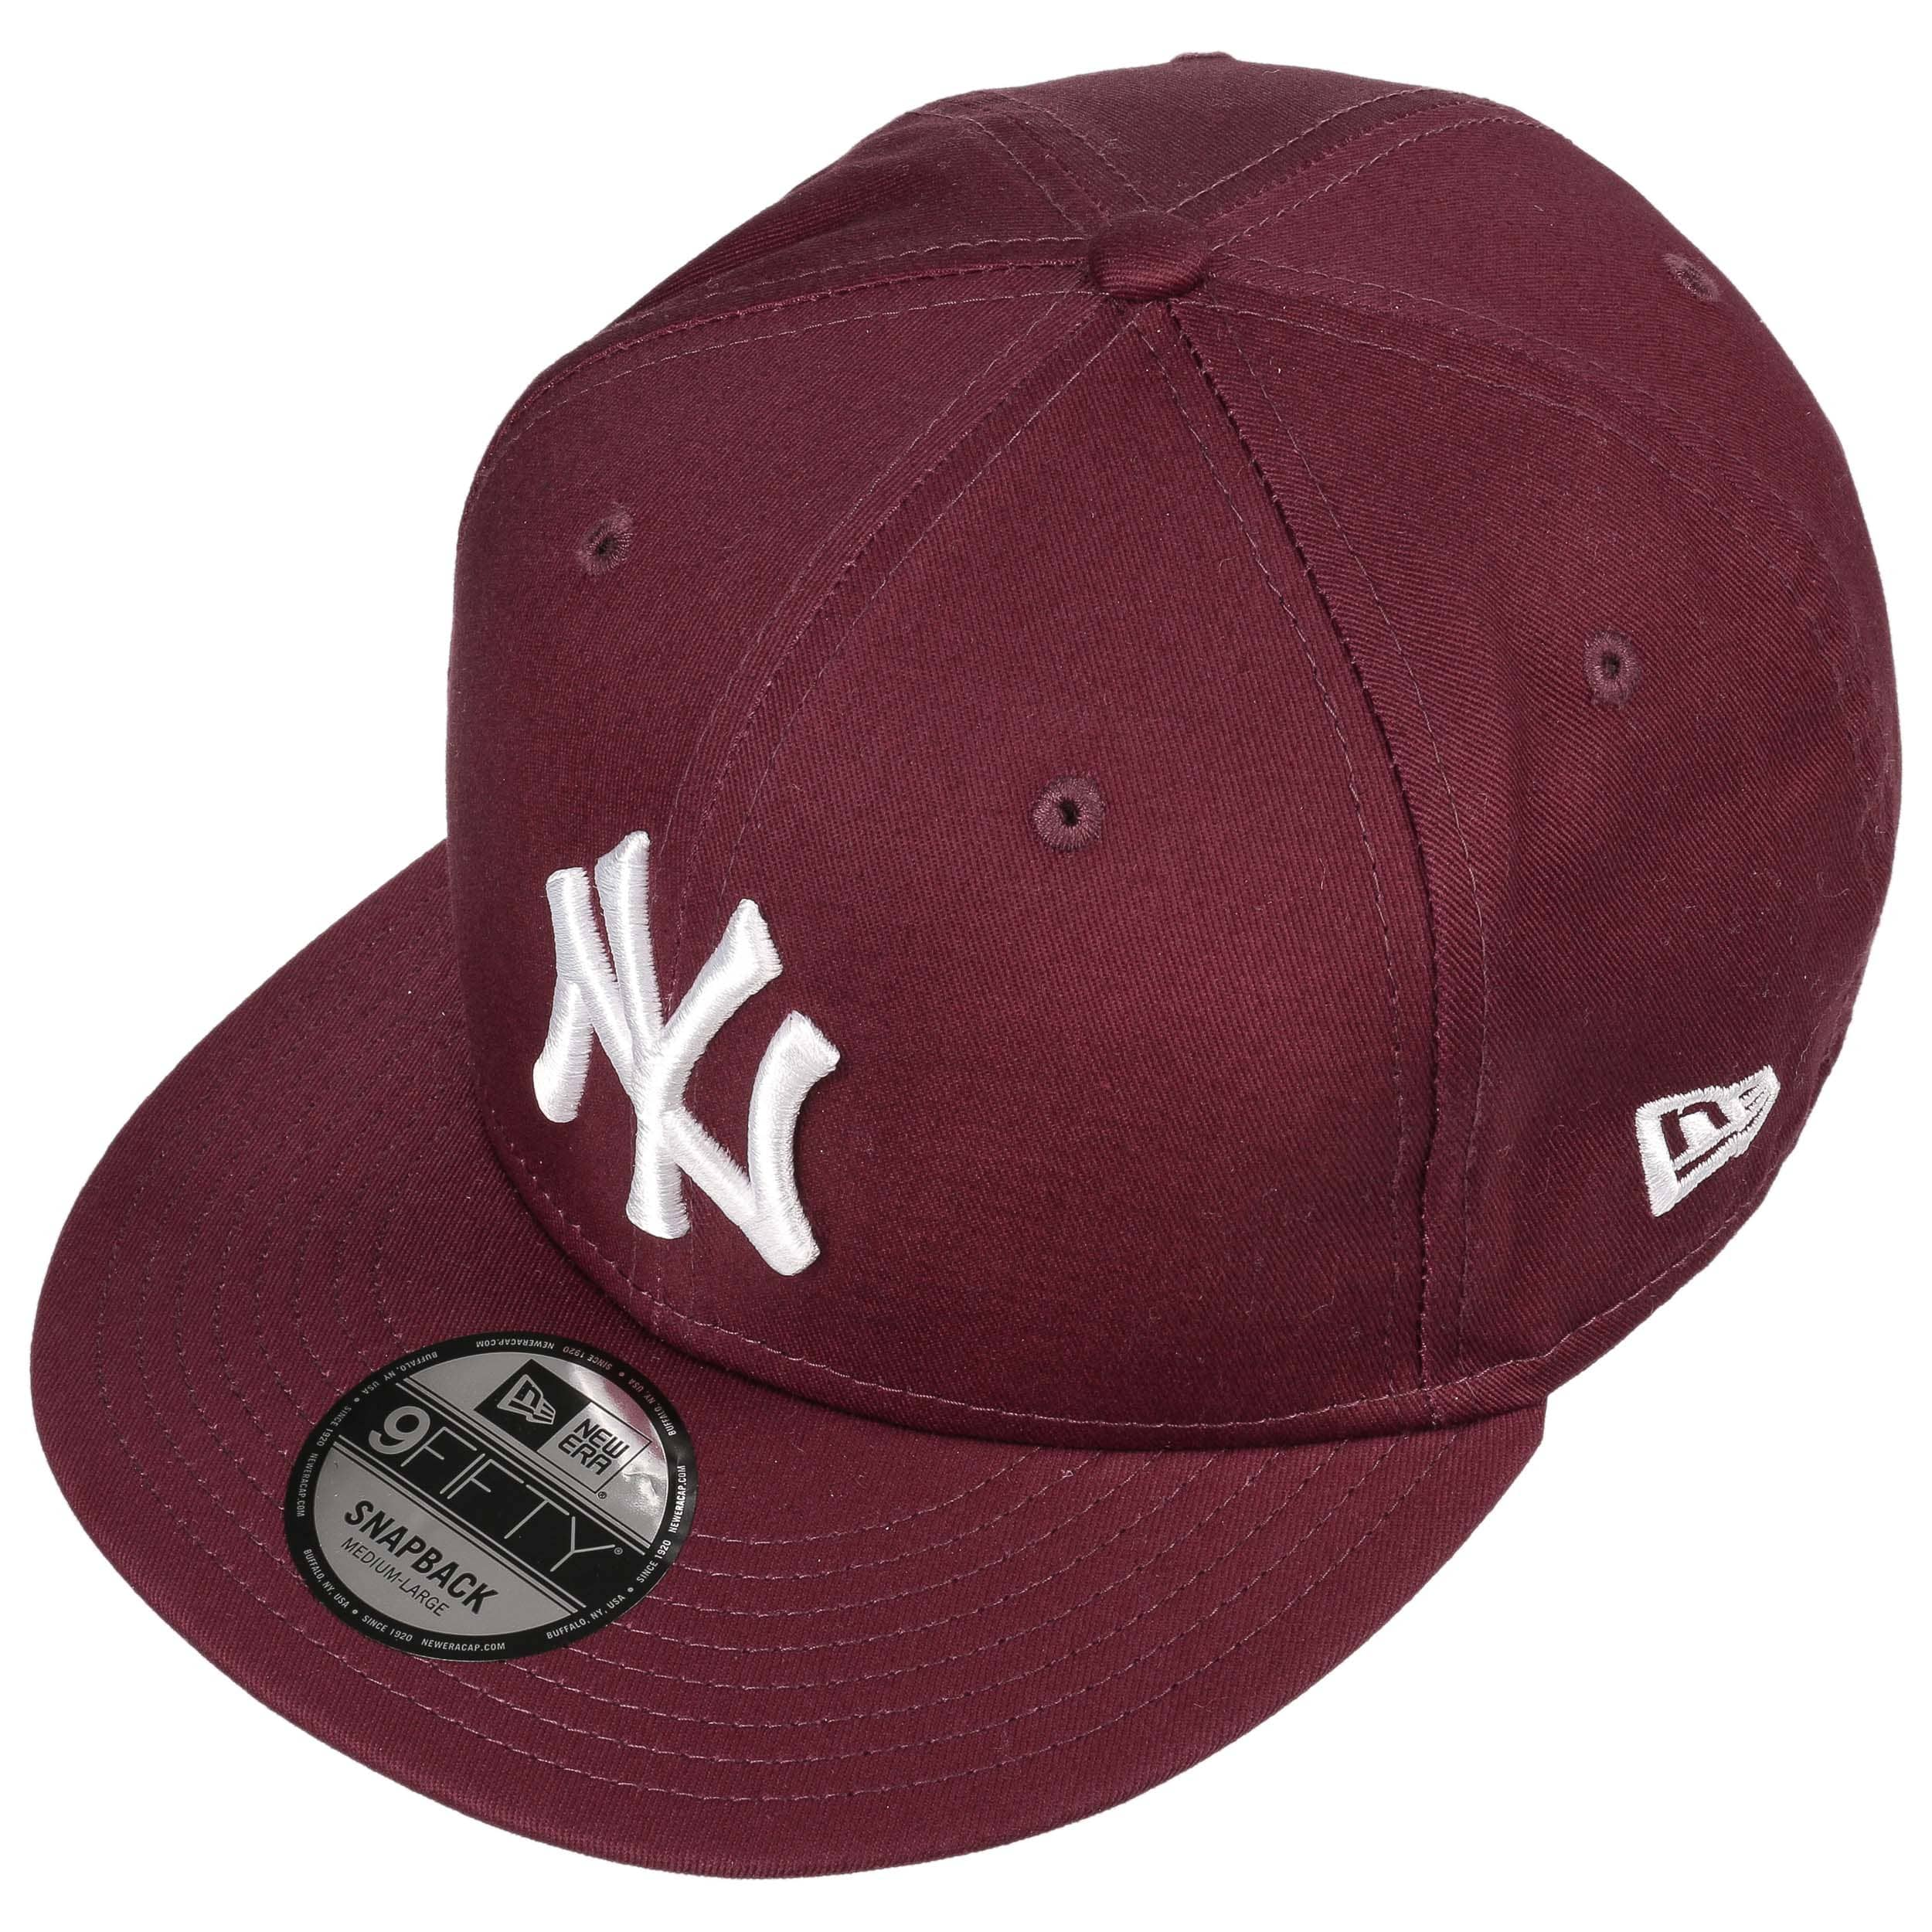 53ceabe41 Casquette 9Fifty Ess NY Yankees by New Era